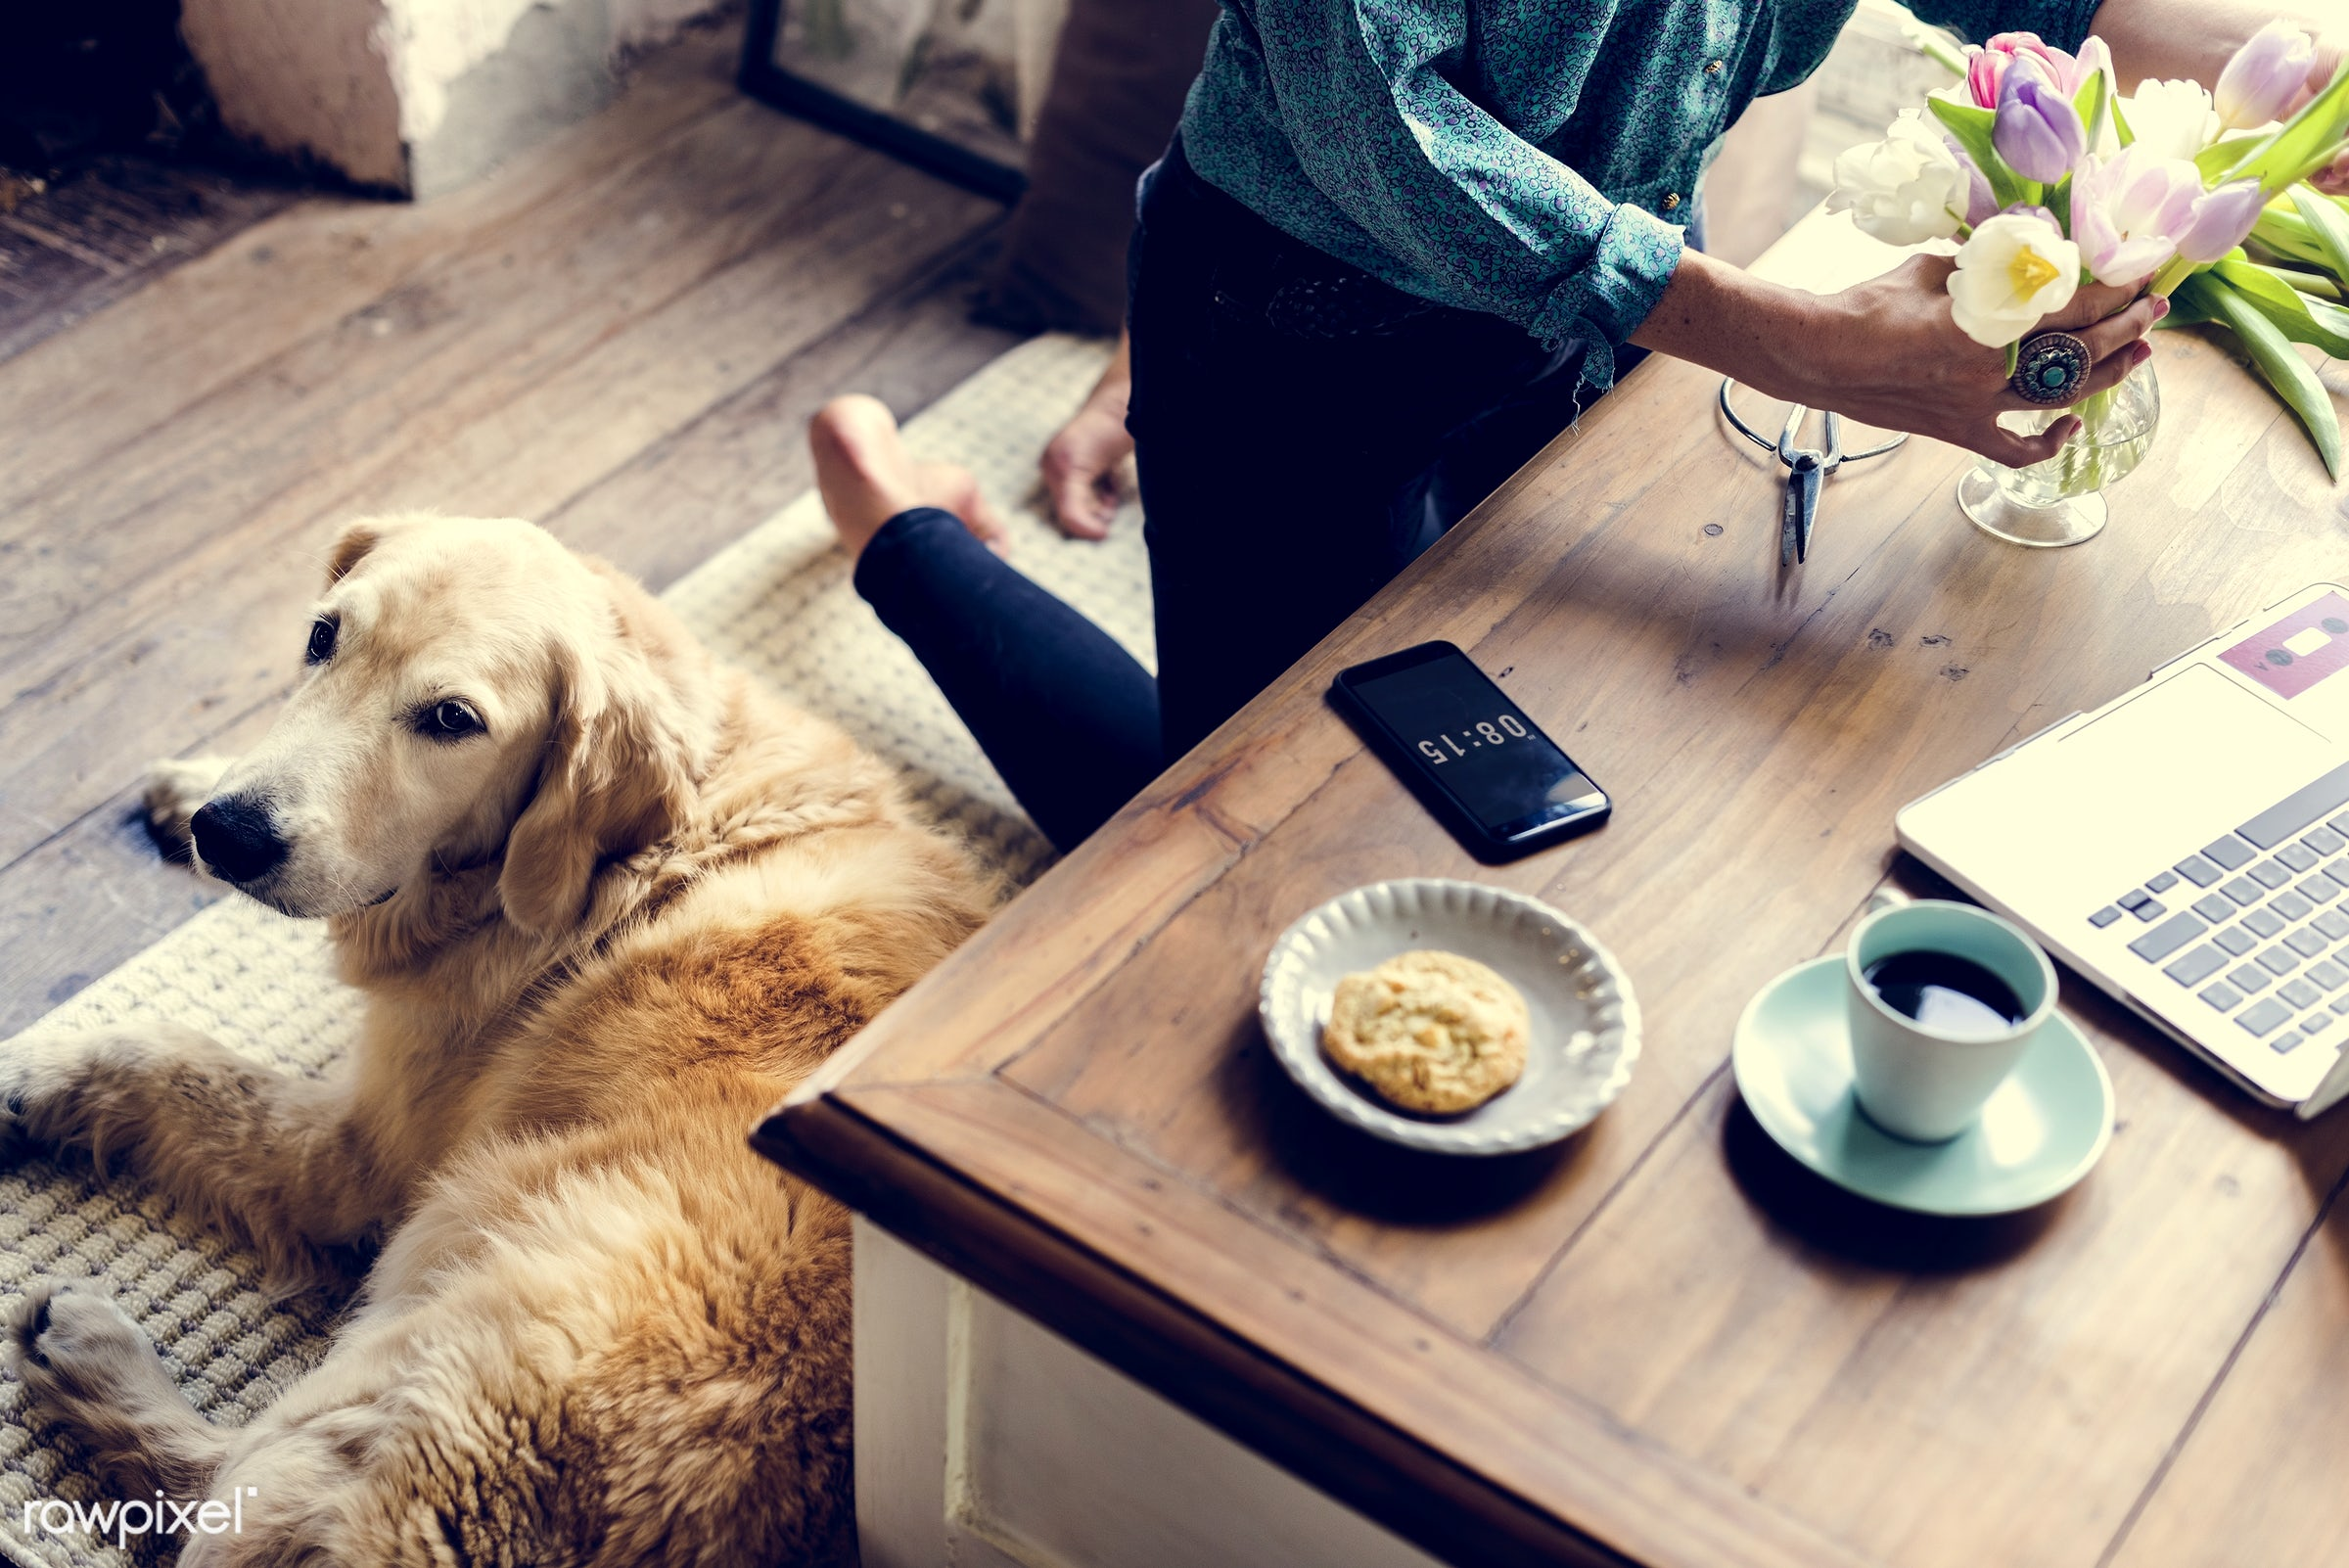 breed, using, person, relax, people, woman, laptop, working, flowers, surf, cheerful, work, coffee, table, canine, present,...